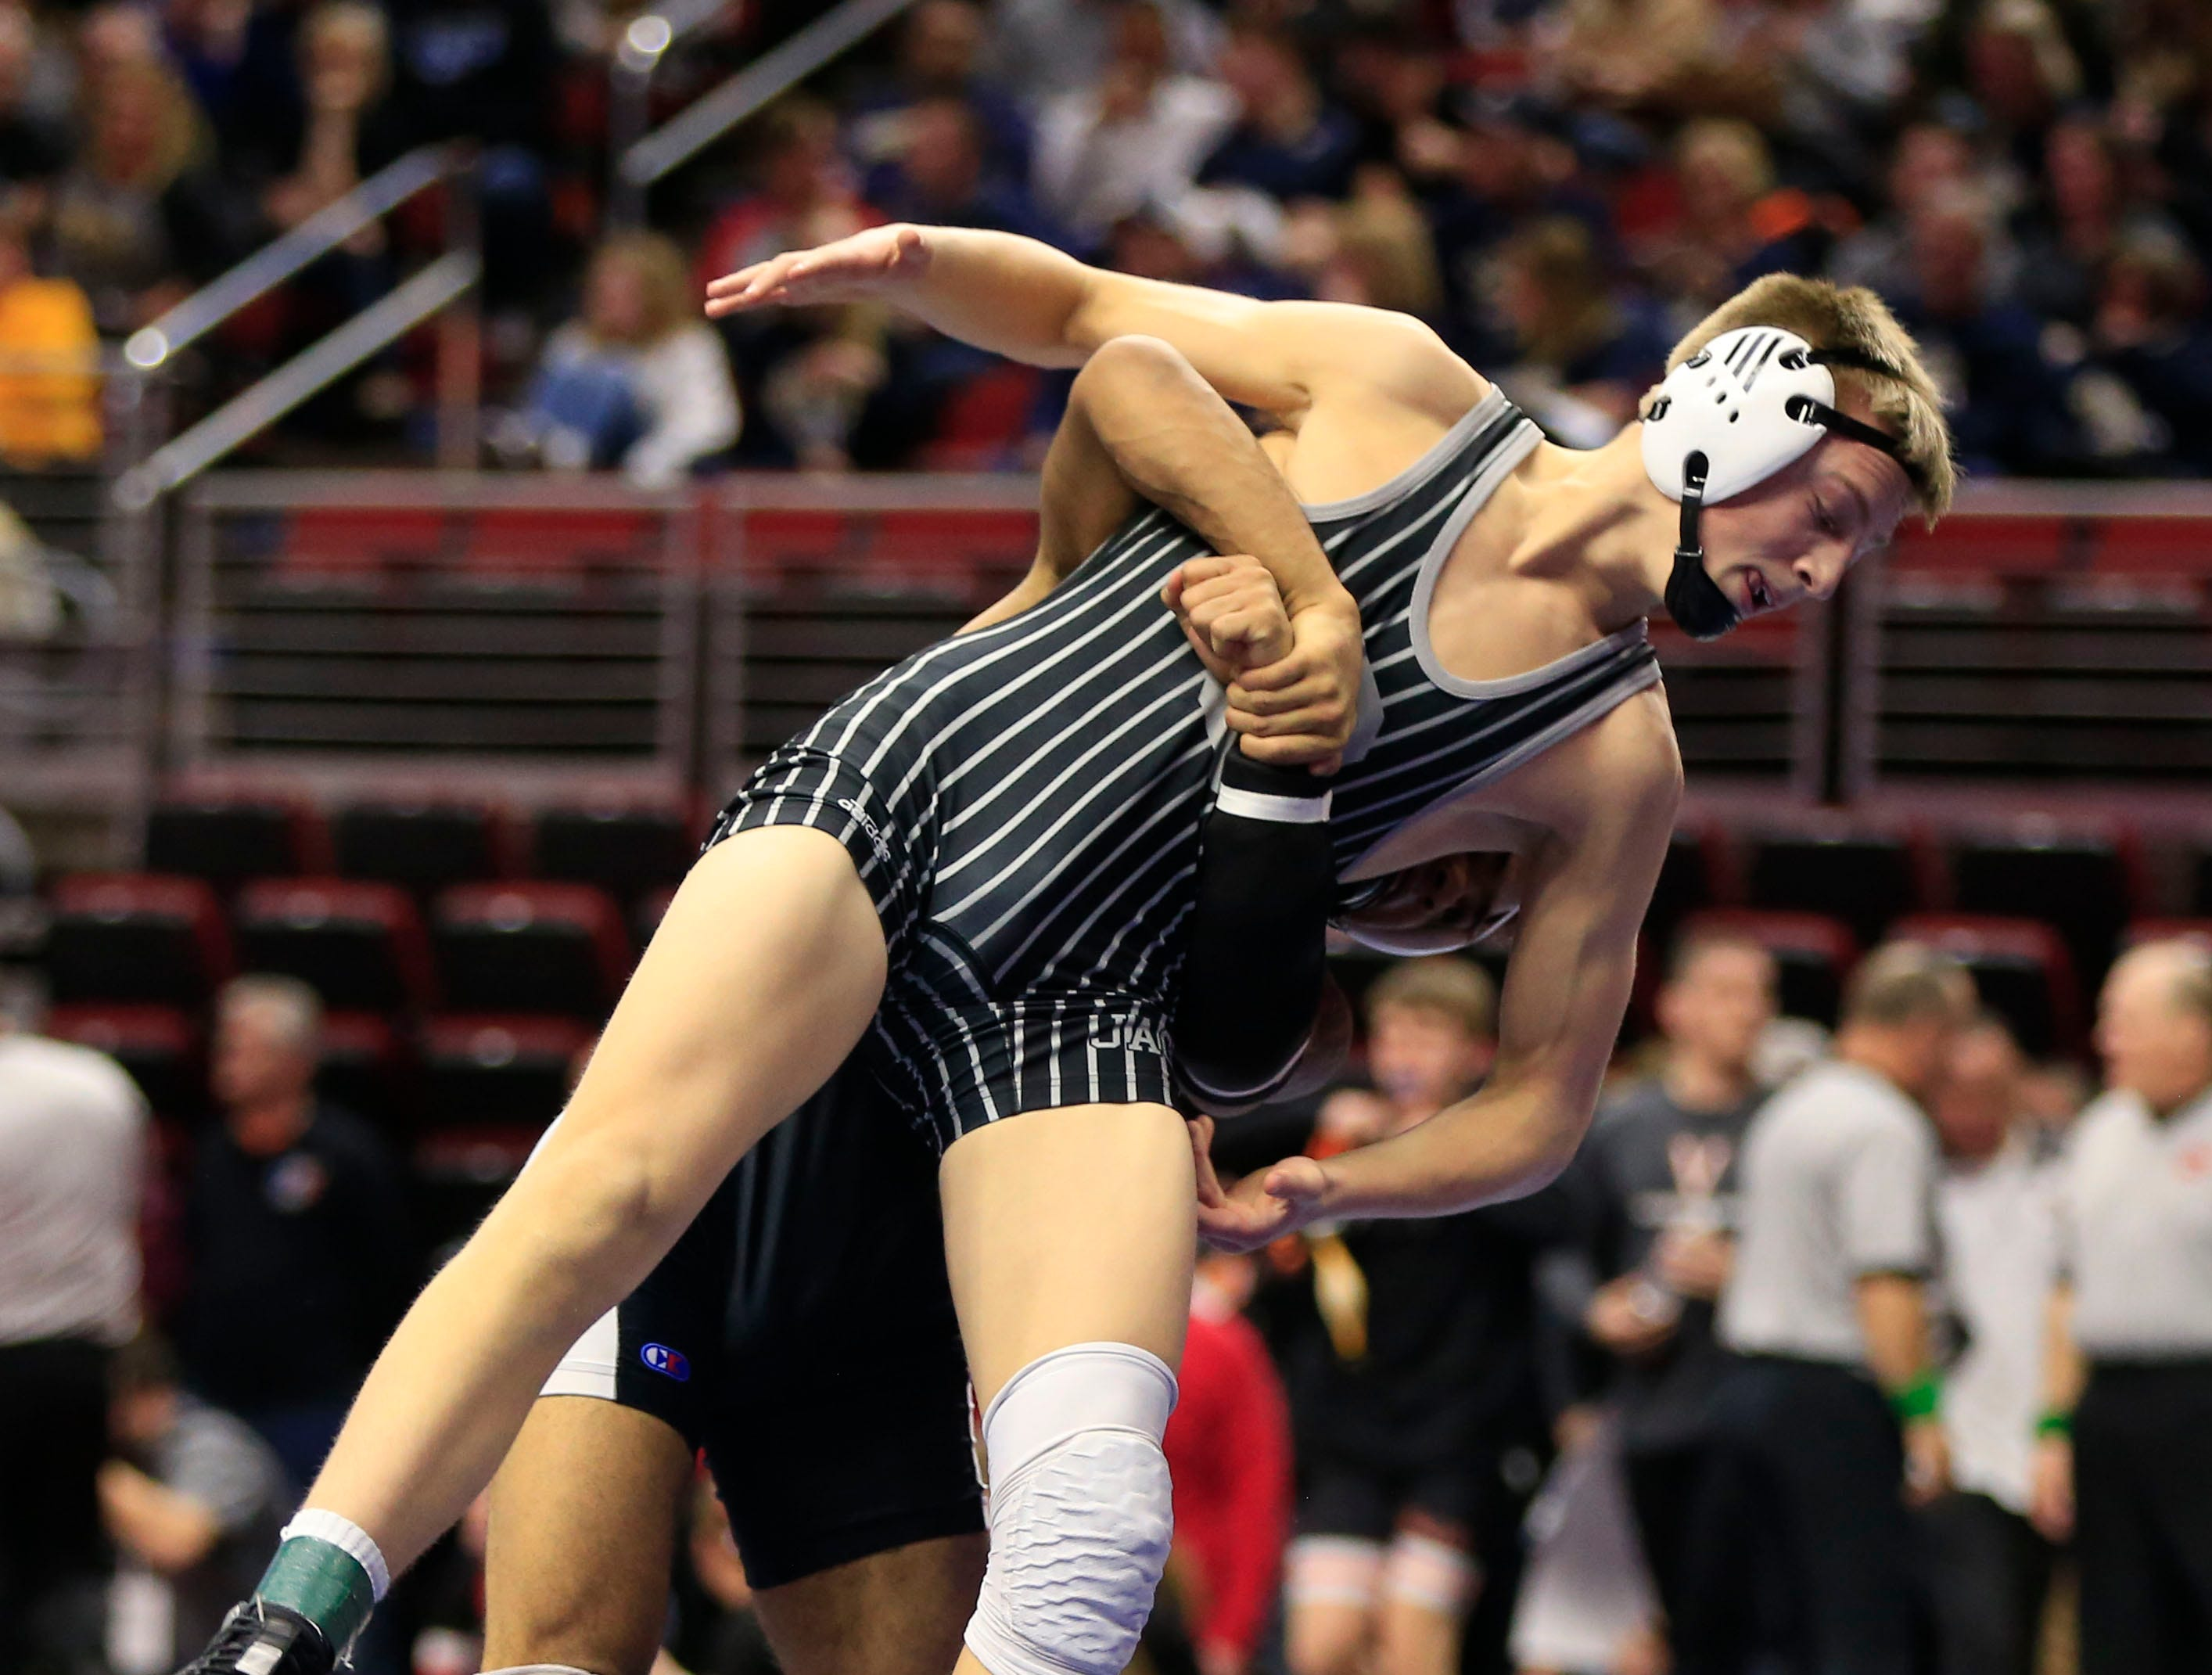 Eric Owens of Ankeny Centennial defeats Deville Dentis of Des Moines East during a 145 Lb 3A semifinal match at the state wrestling tournament Friday, Feb. 15, 2019.